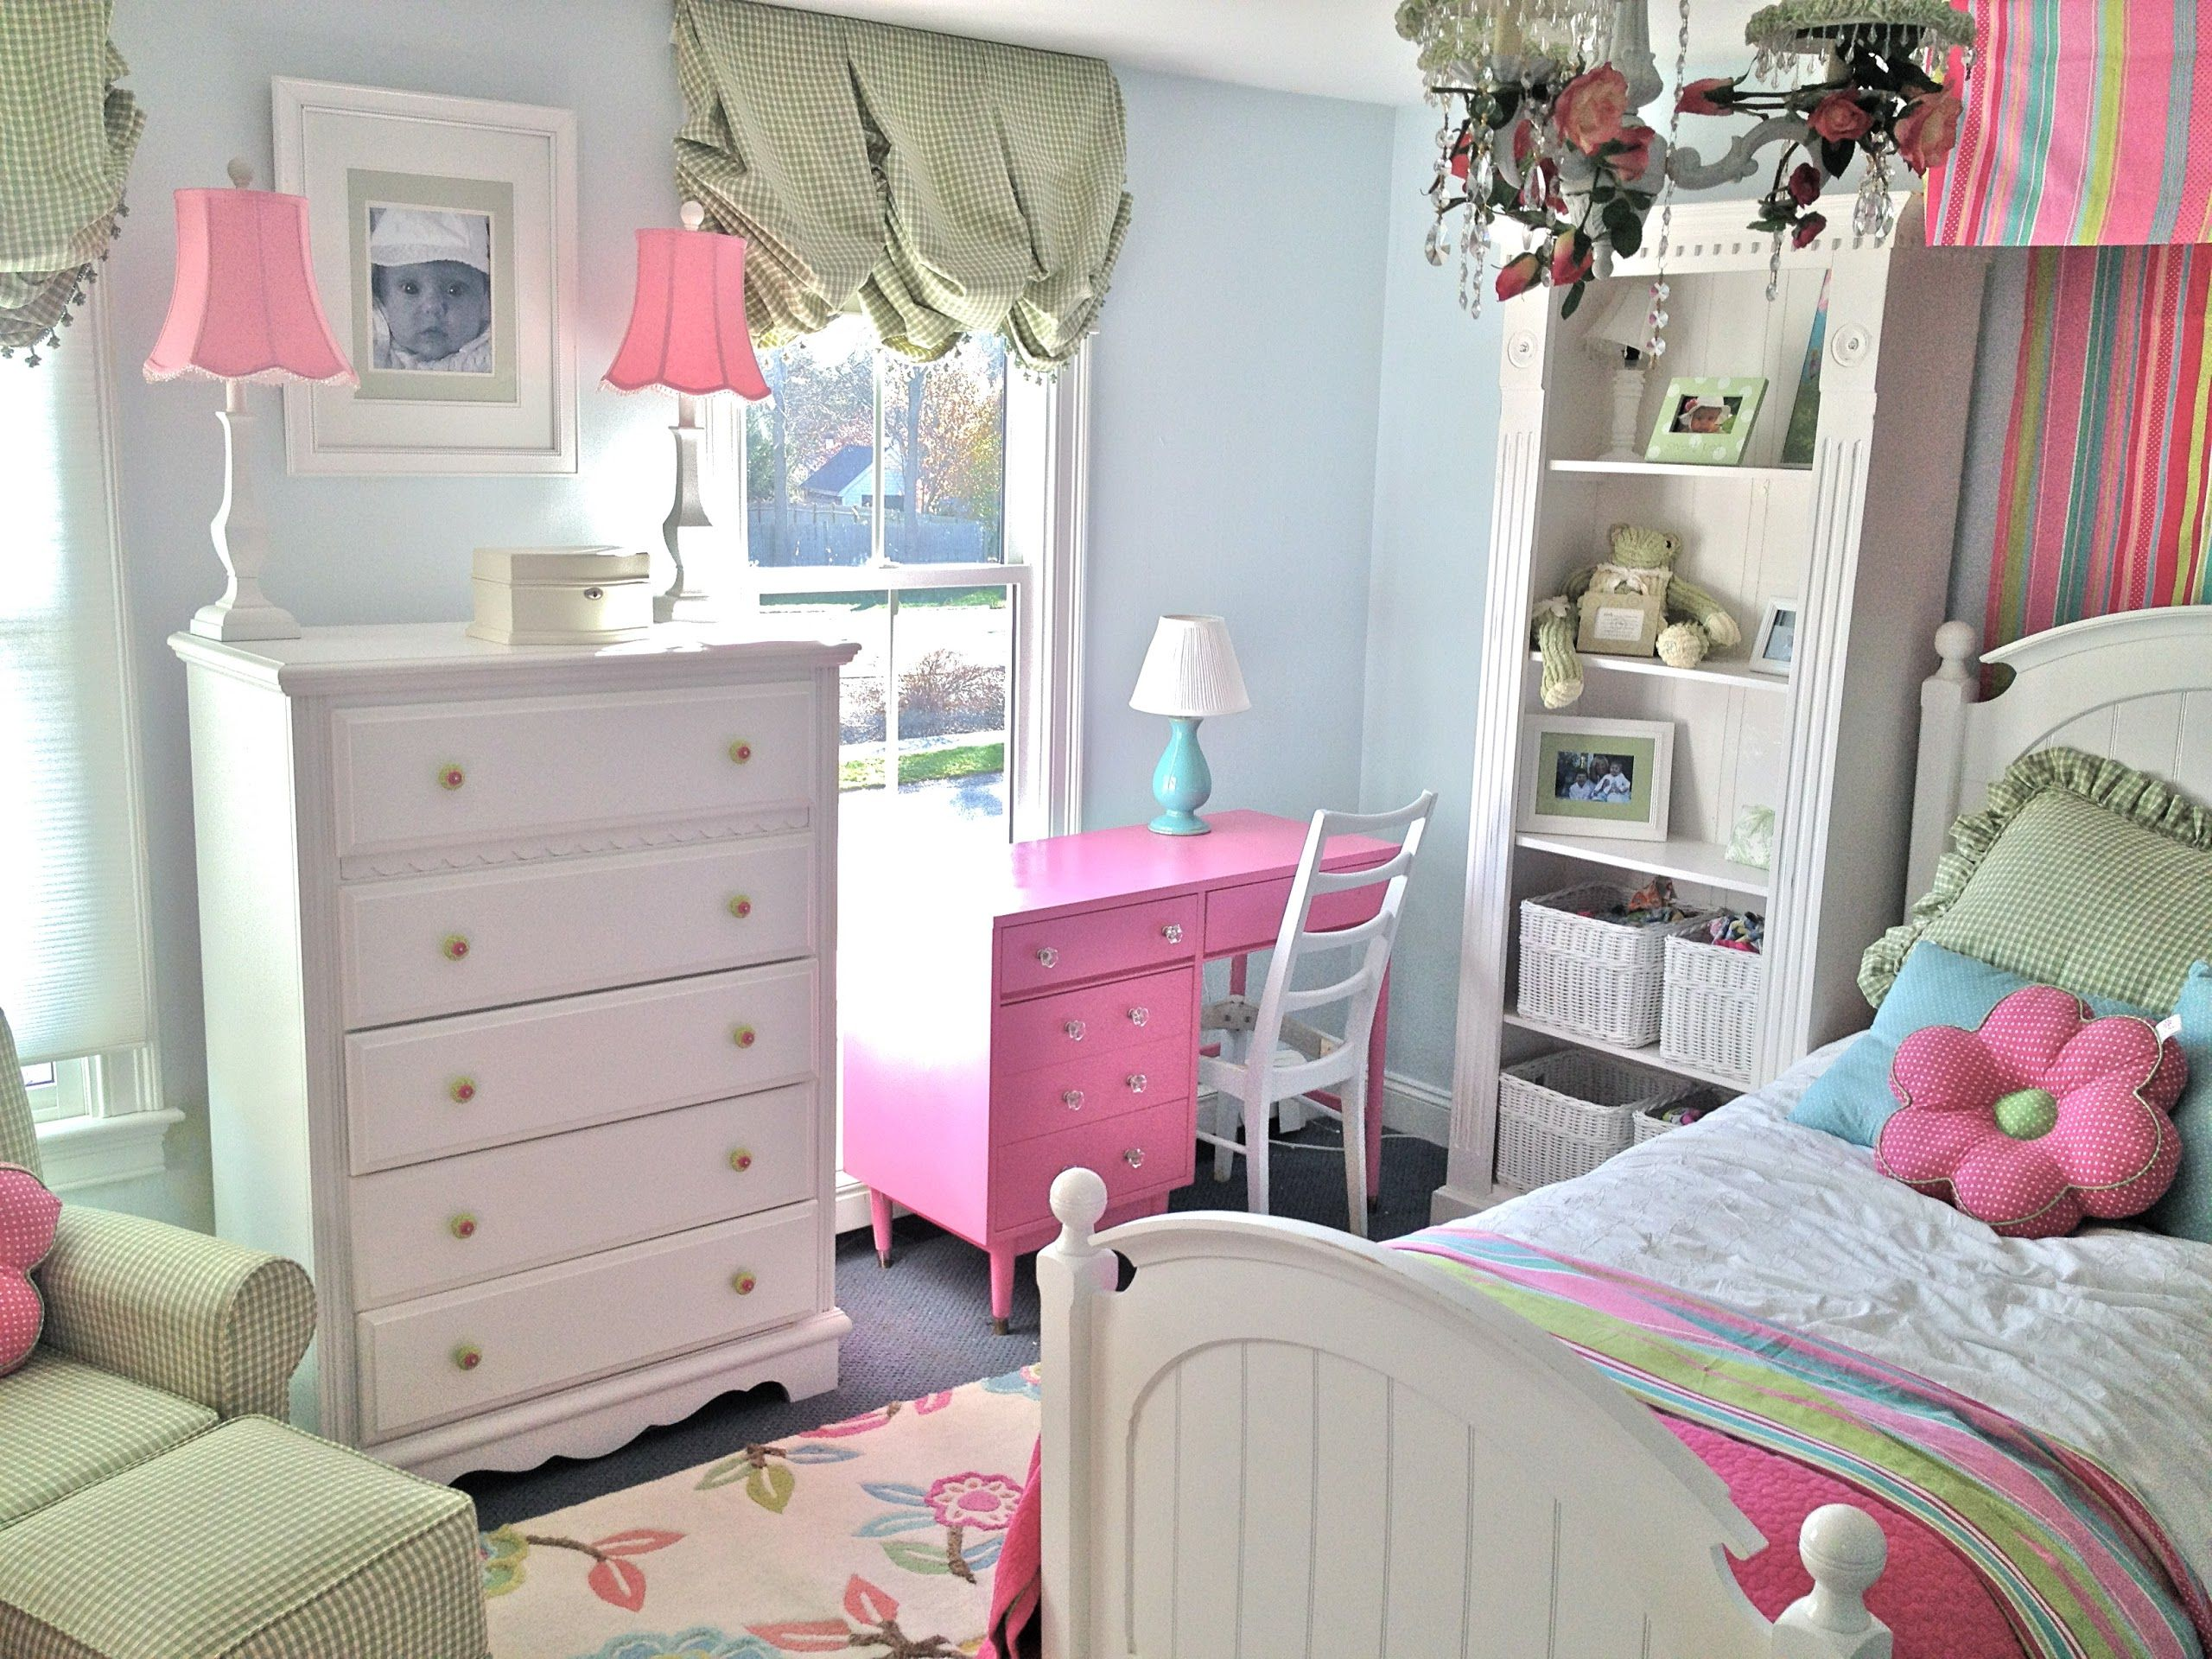 Bedroom ideas for teenage girls light pink - Cute White And Light Blue Room Decoration For Teen Girl Bedroom Feats Twin Pink Desk Lamp